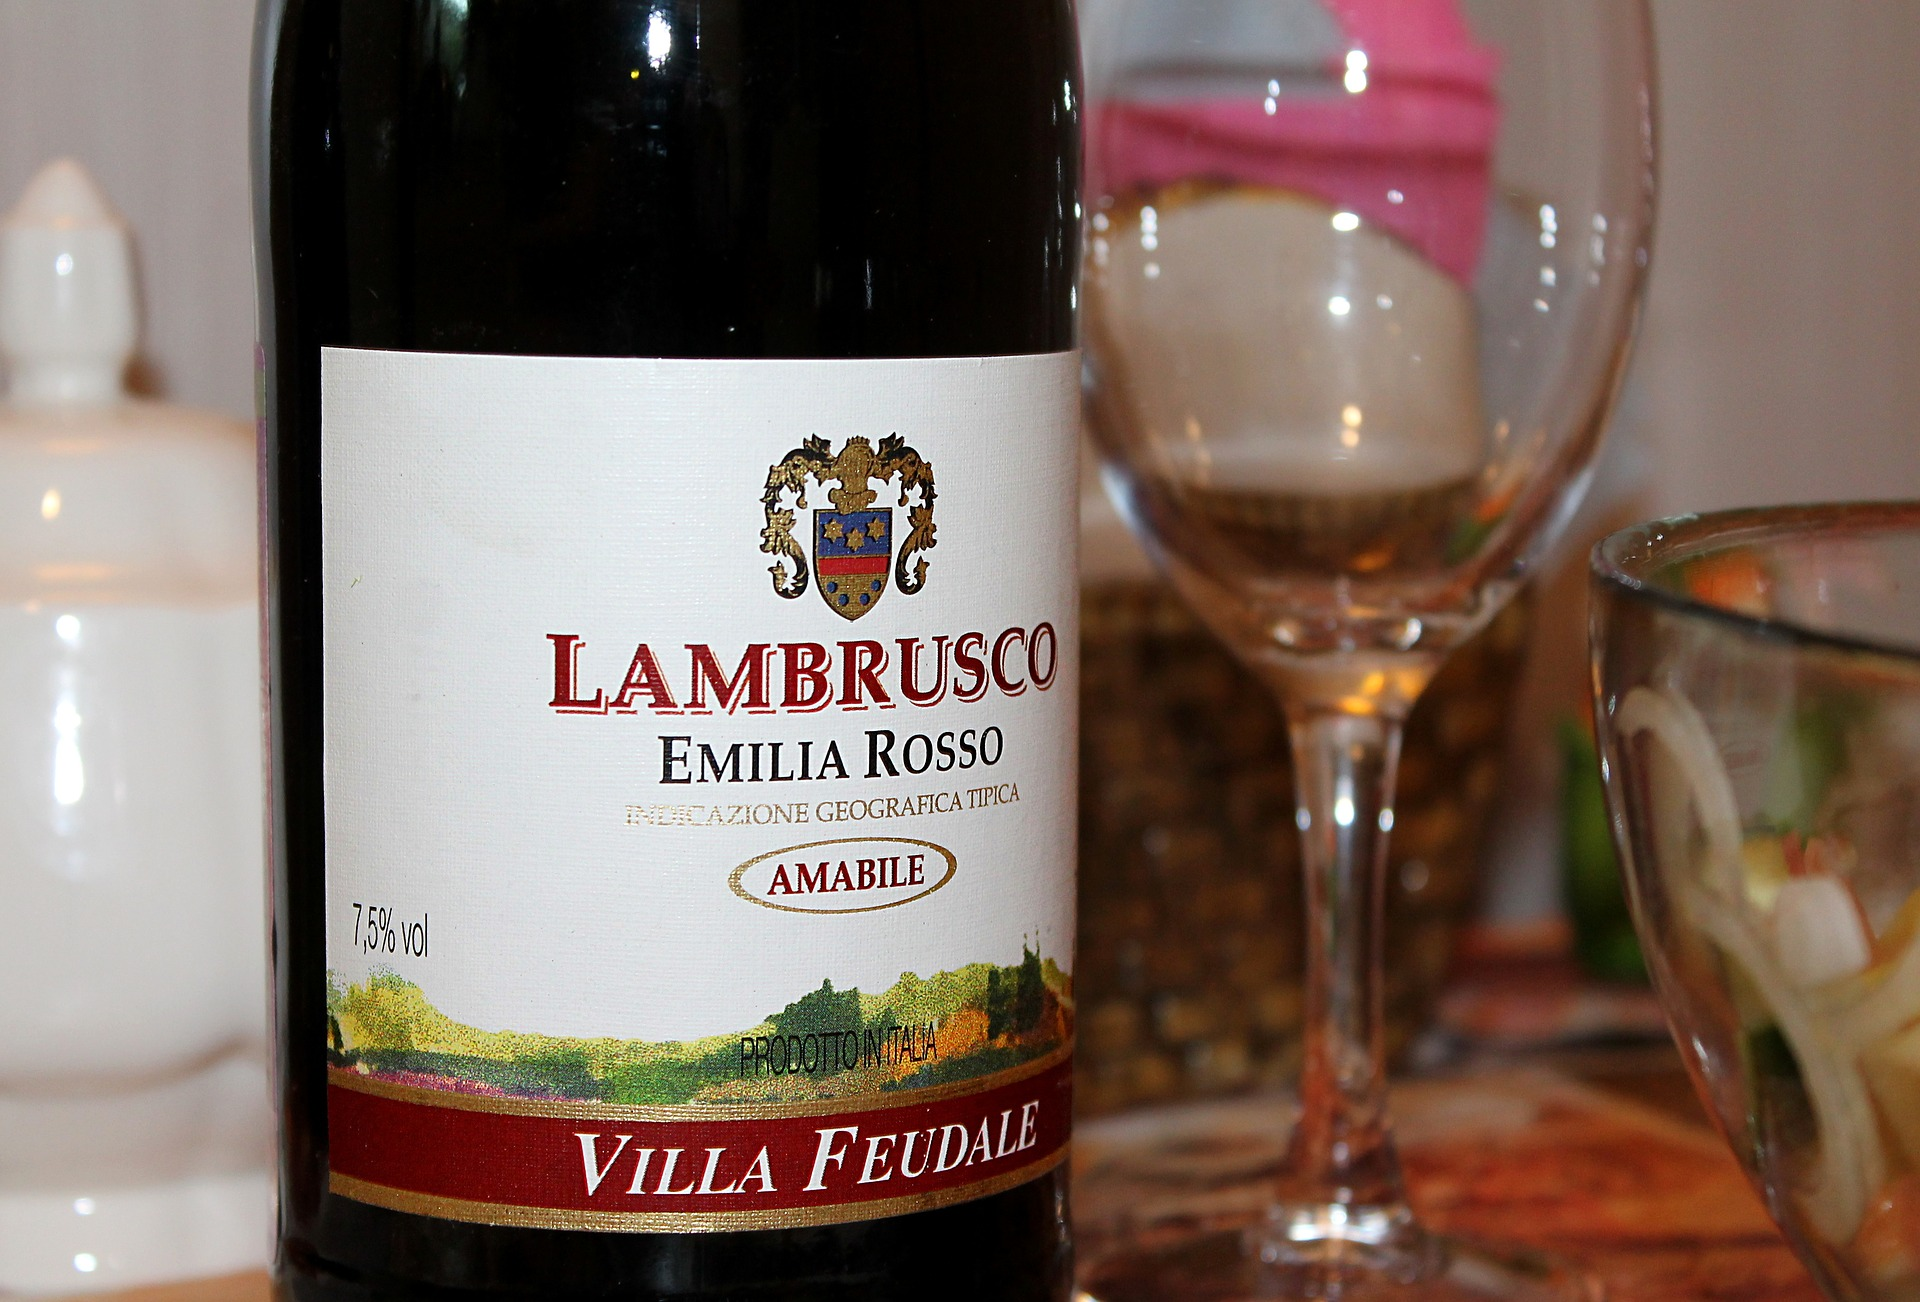 Lambrusco is treated like water at Trattoria Ermes.  Source